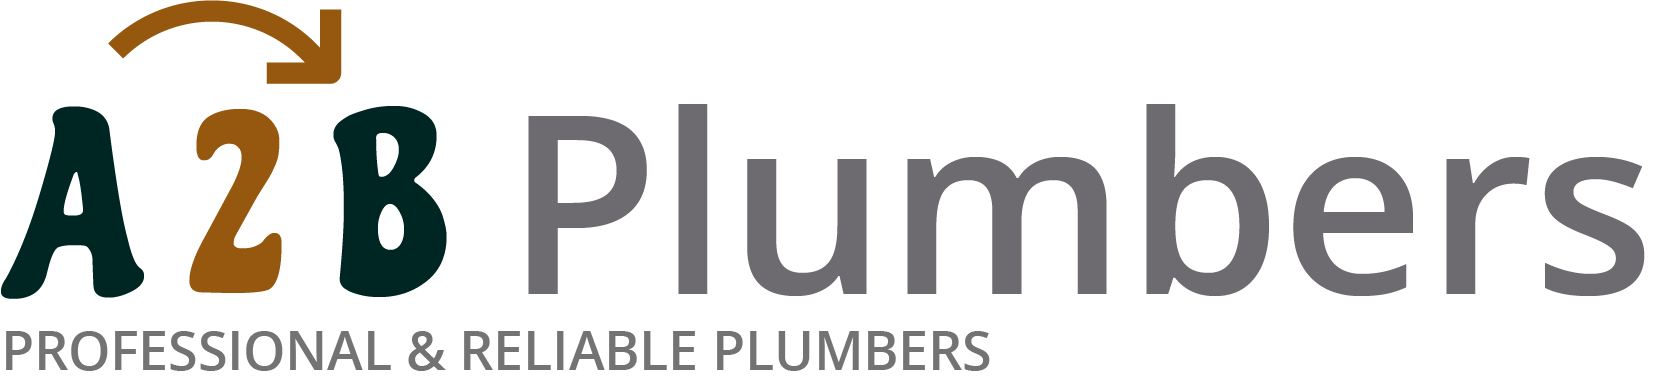 If you need a boiler installed, a radiator repaired or a leaking tap fixed, call us now - we provide services for properties in Plaistow and the local area.